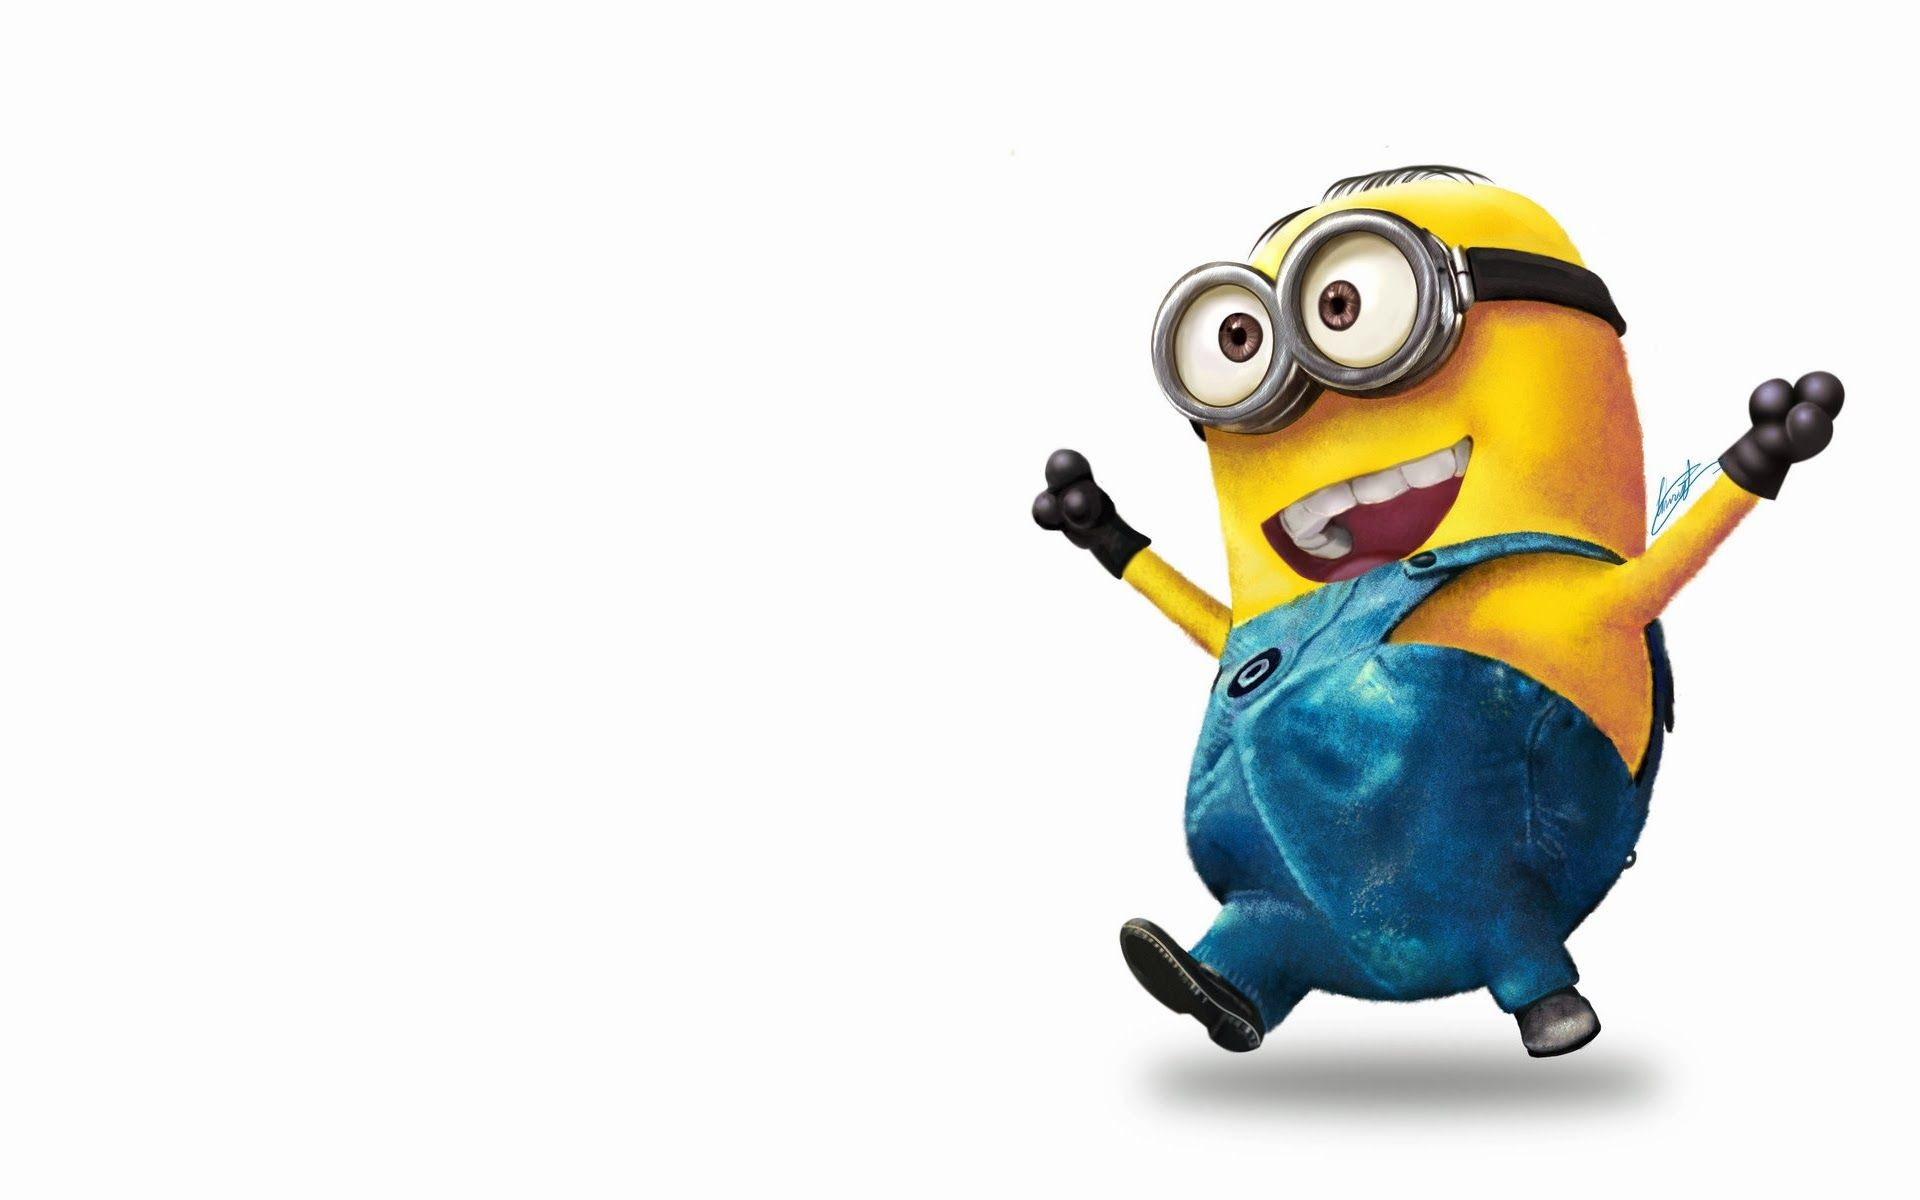 Res: 1920x1200, Minions Wallpaper HD Desktop Picture • iPhones Wallpapers